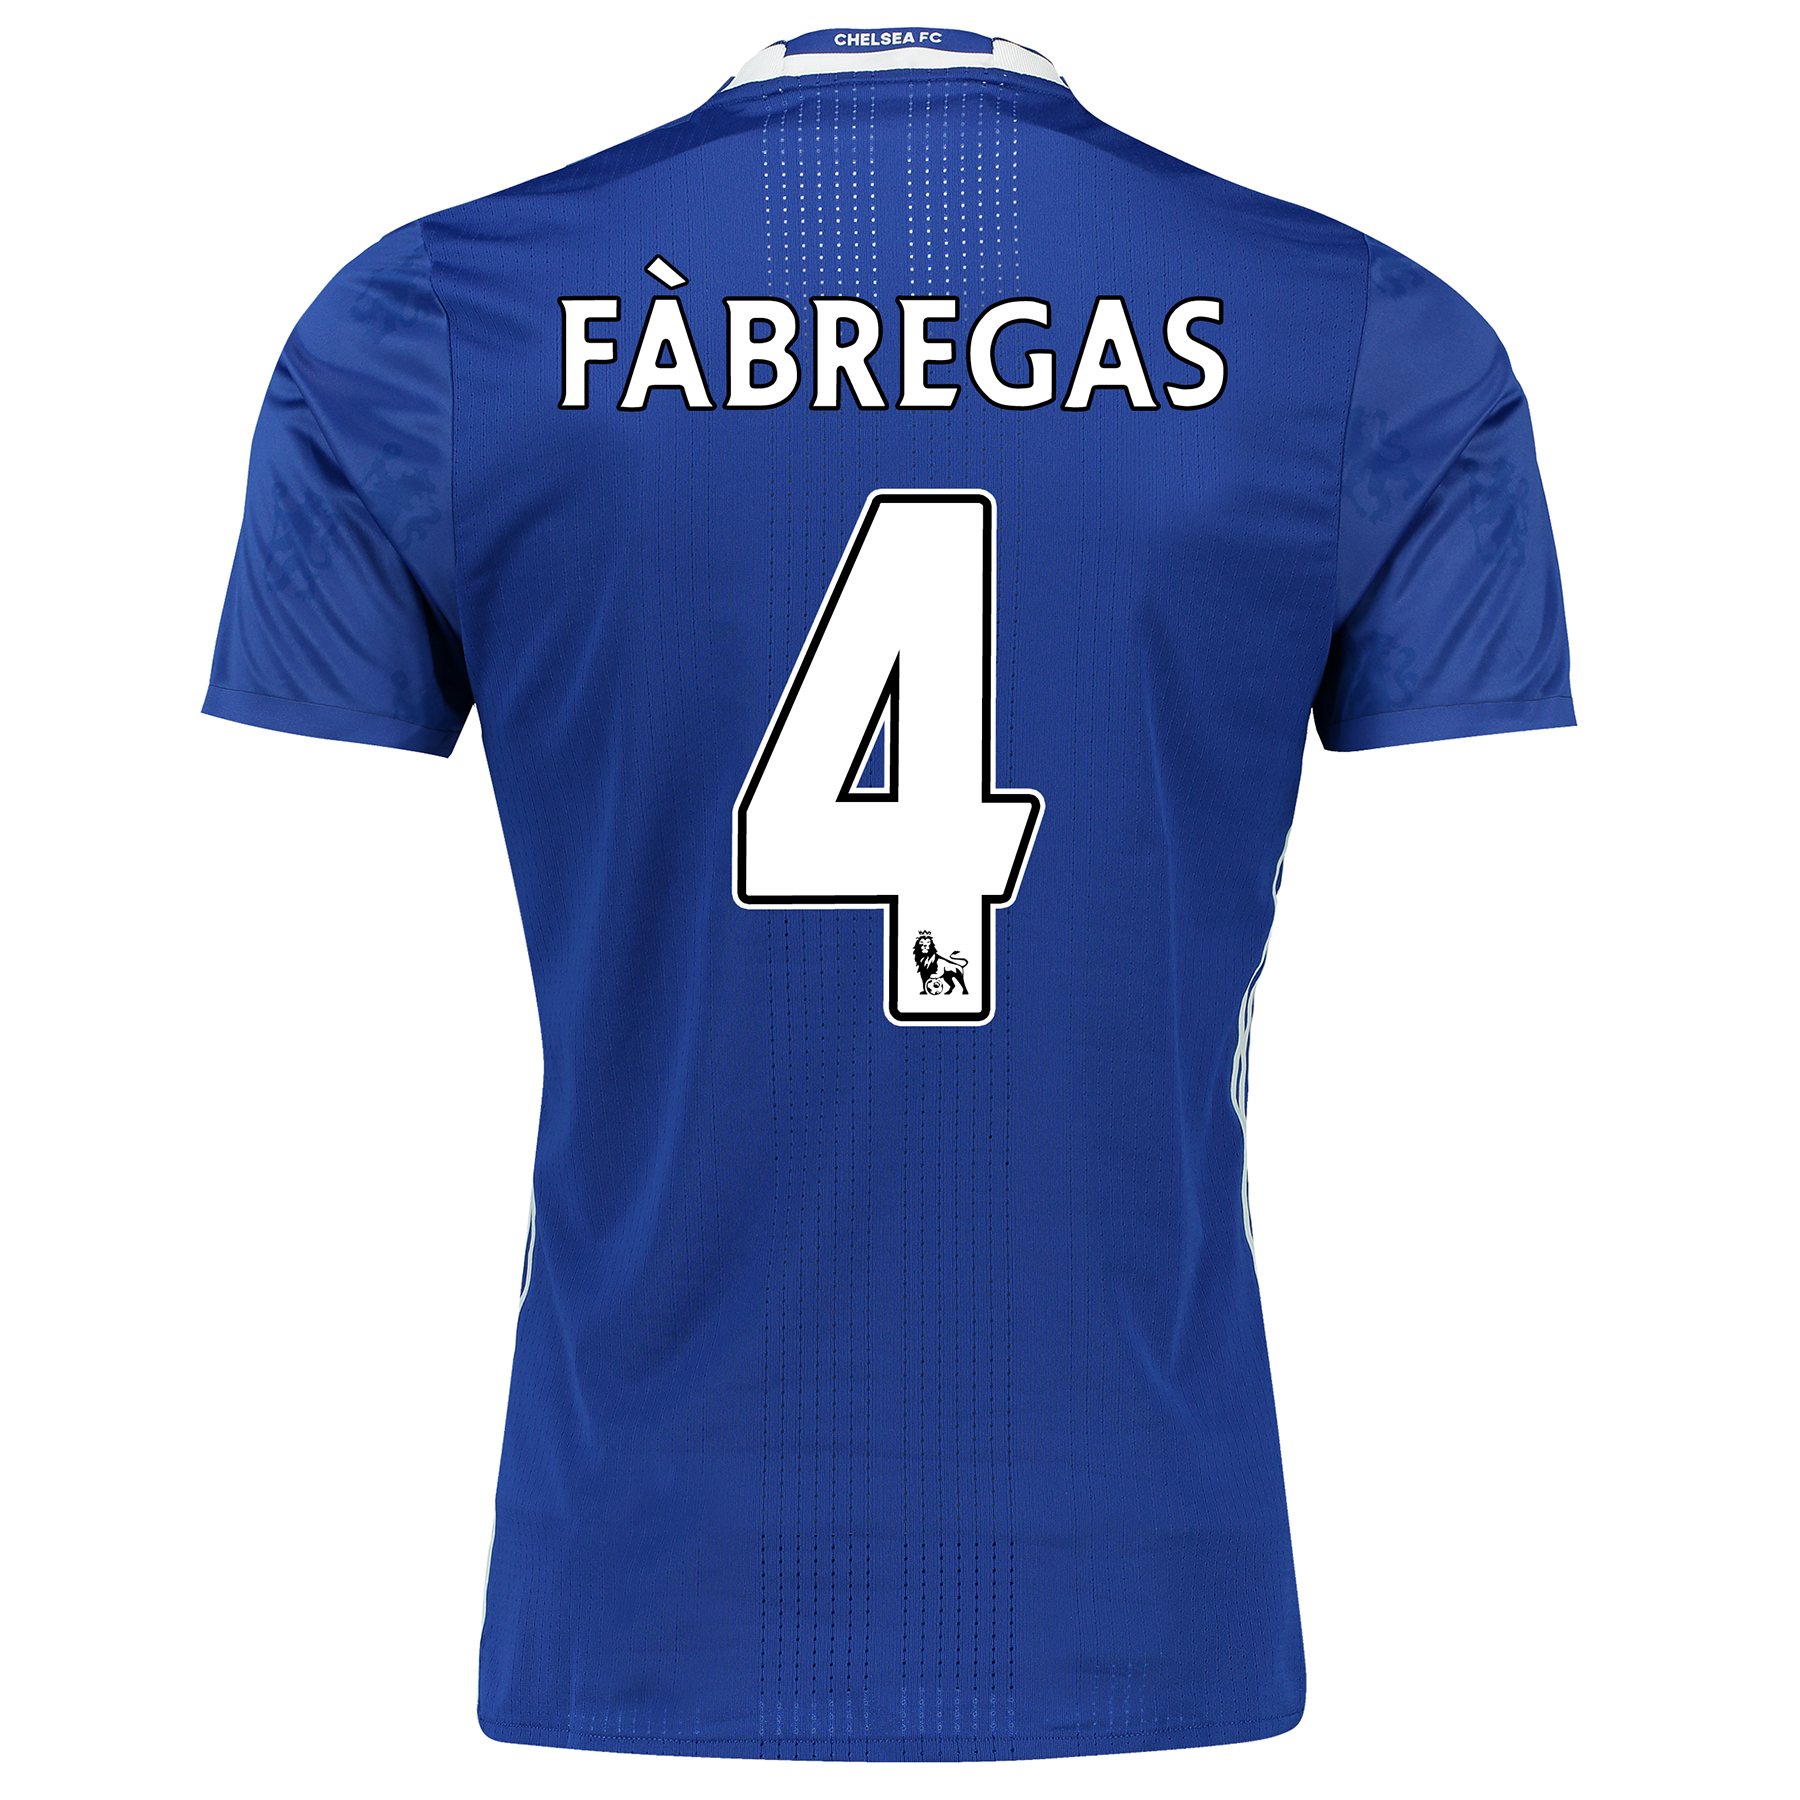 Shop Fàbregas Printed Shirts